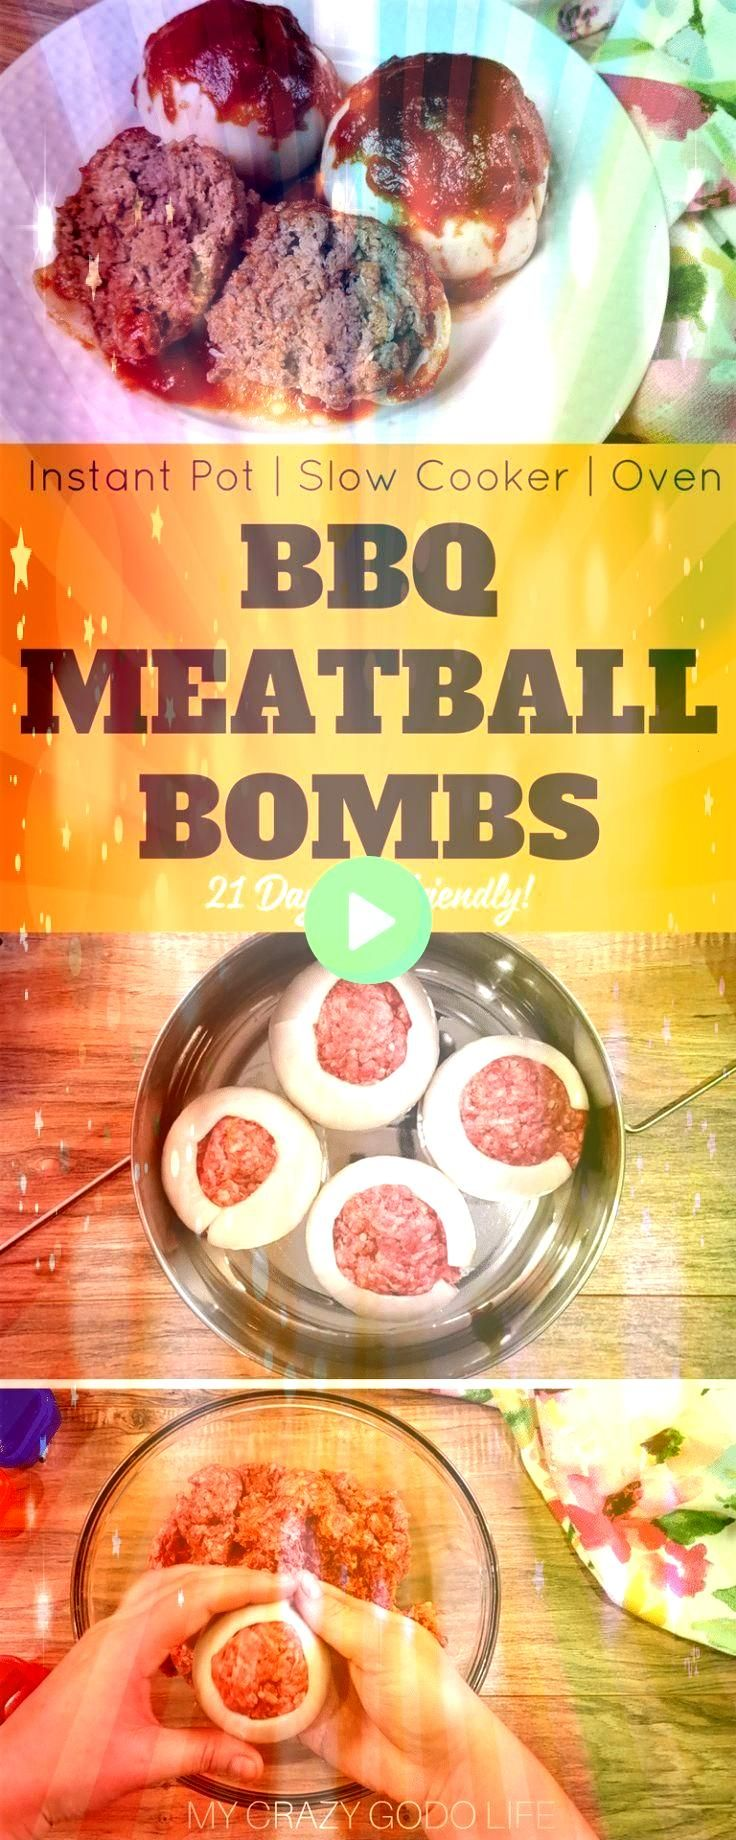 BBQ Meatloaf Bombs are a delicious and healthy dinner that is family friend  21 Day Fix Instant Pot Recipes Mini BBQ Meatloaf Bombs are a delicious and healthy dinner tha...